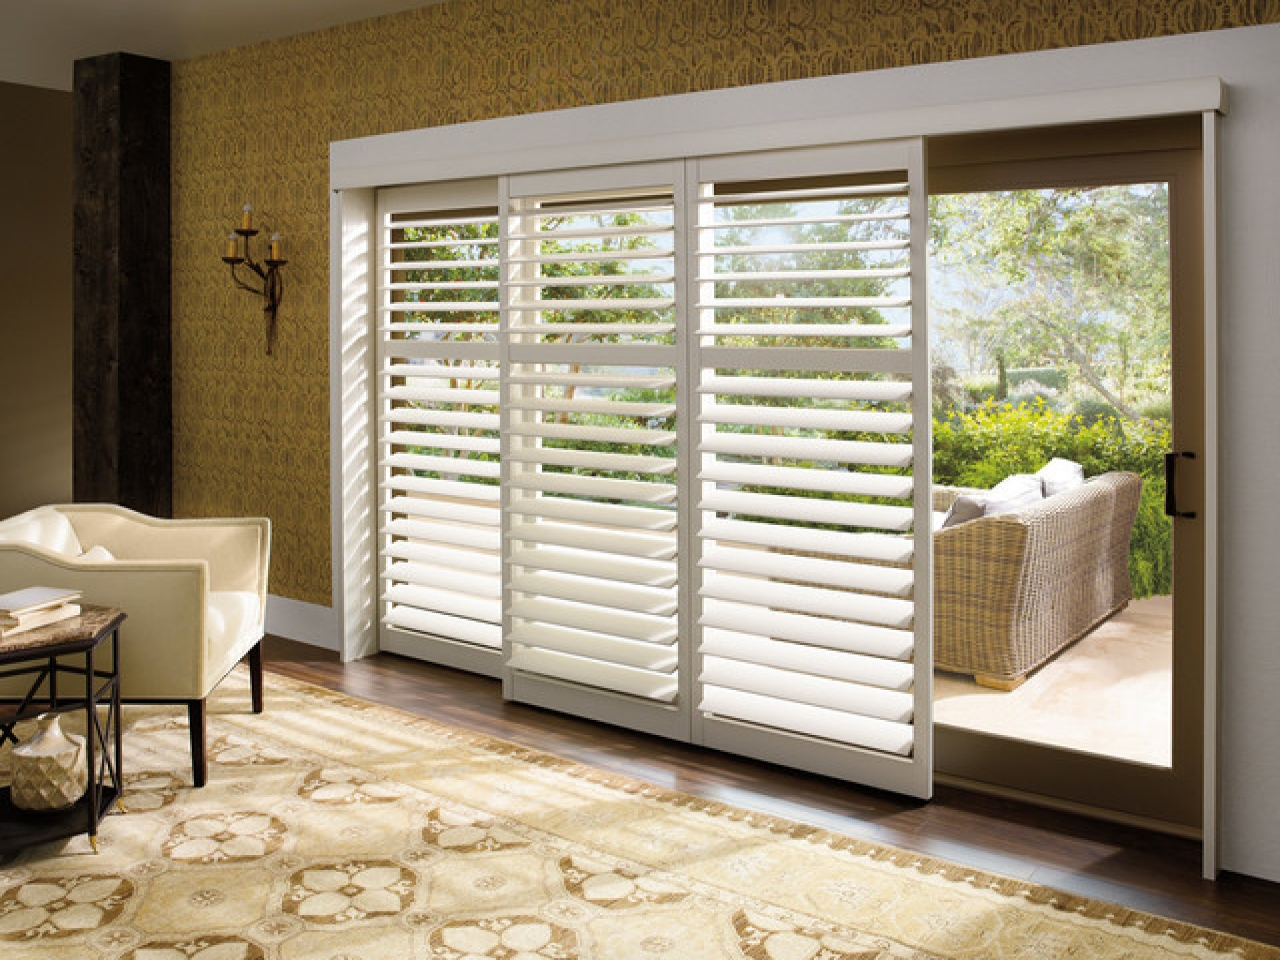 plantation shutters for sliding glass doors patio door window treatment ideas plantation shutters for sliding glass LYWDDPQ